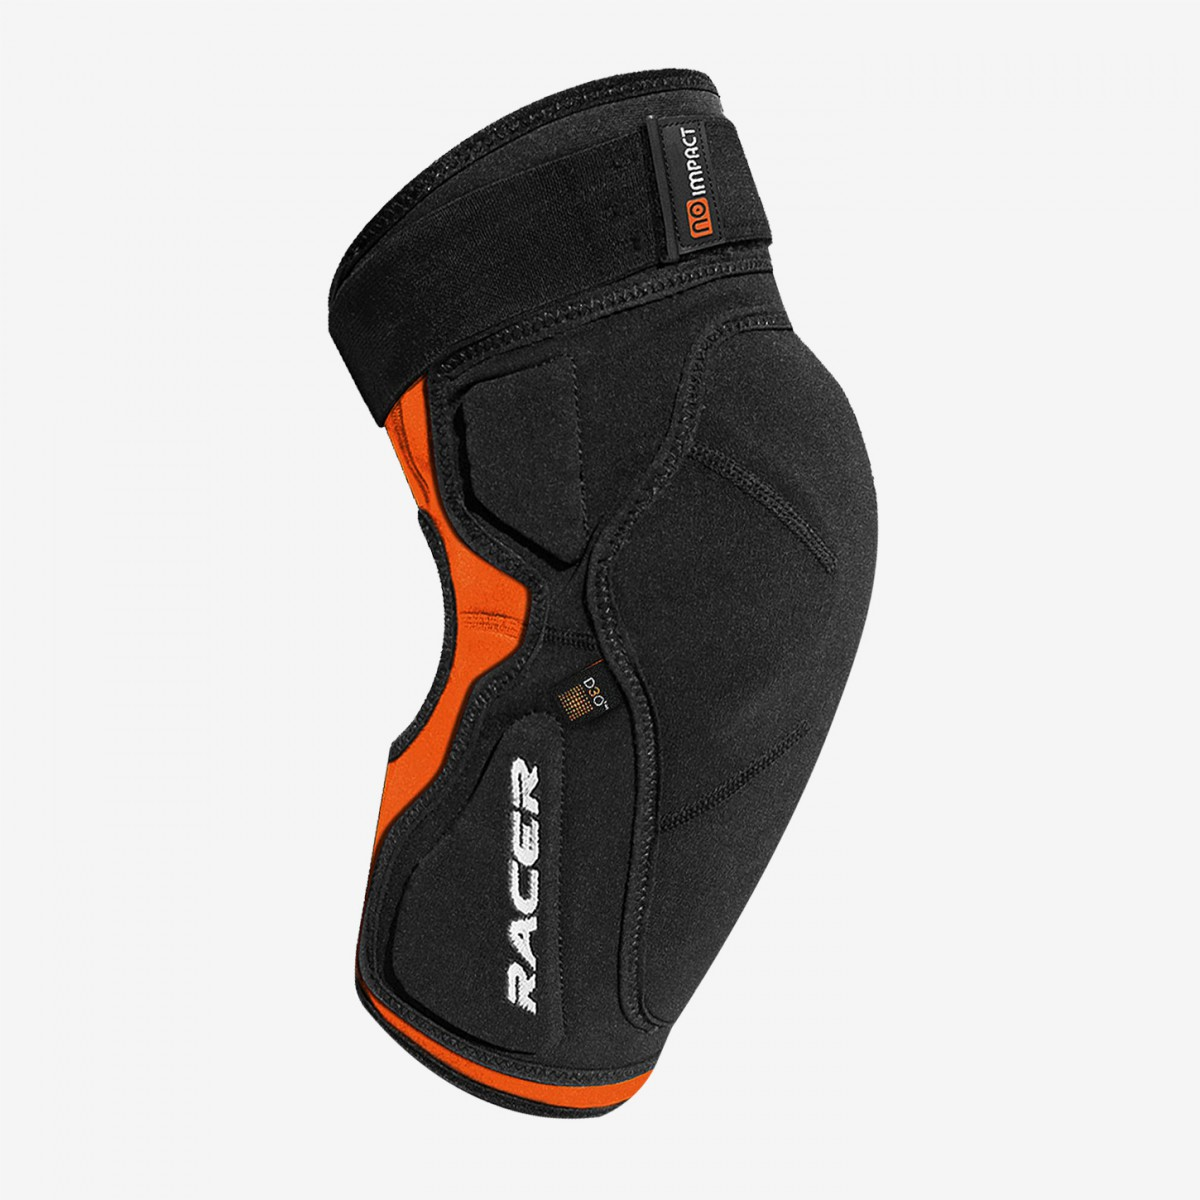 bike_protections___racer_knee_guard_profile_knee